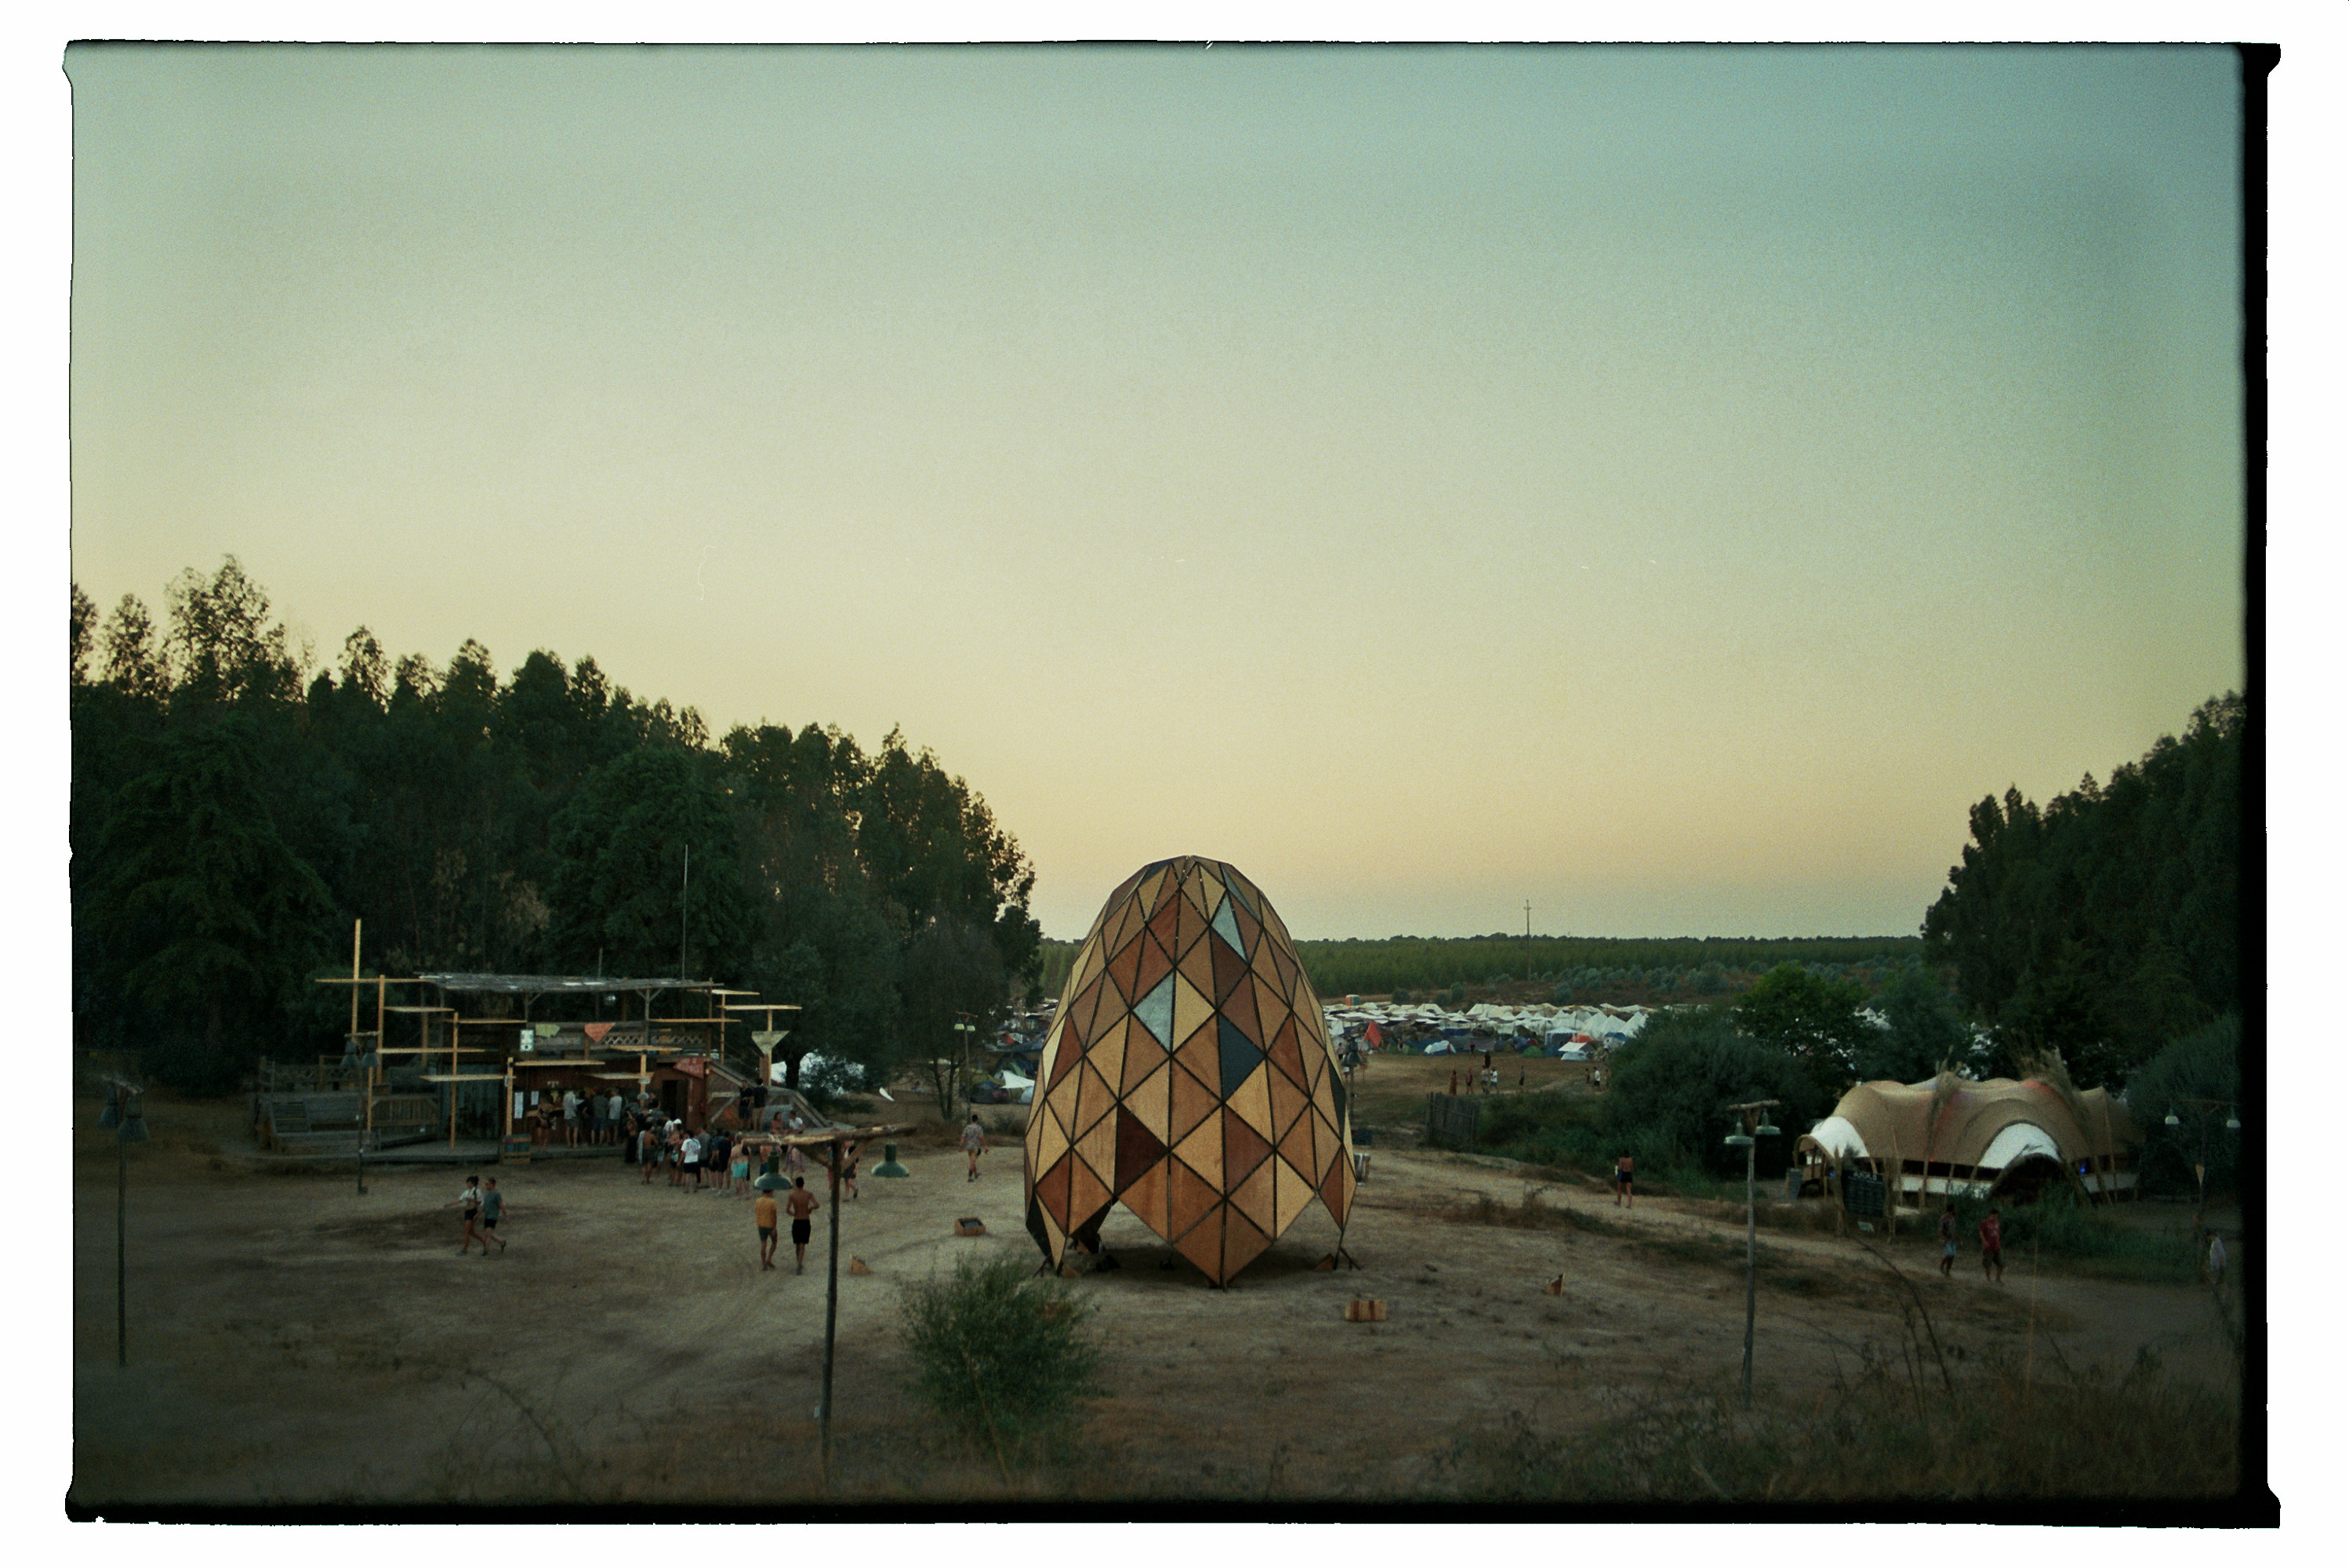 waking-life-festival-crato-portugal-constructie-Stephanie-Migerode